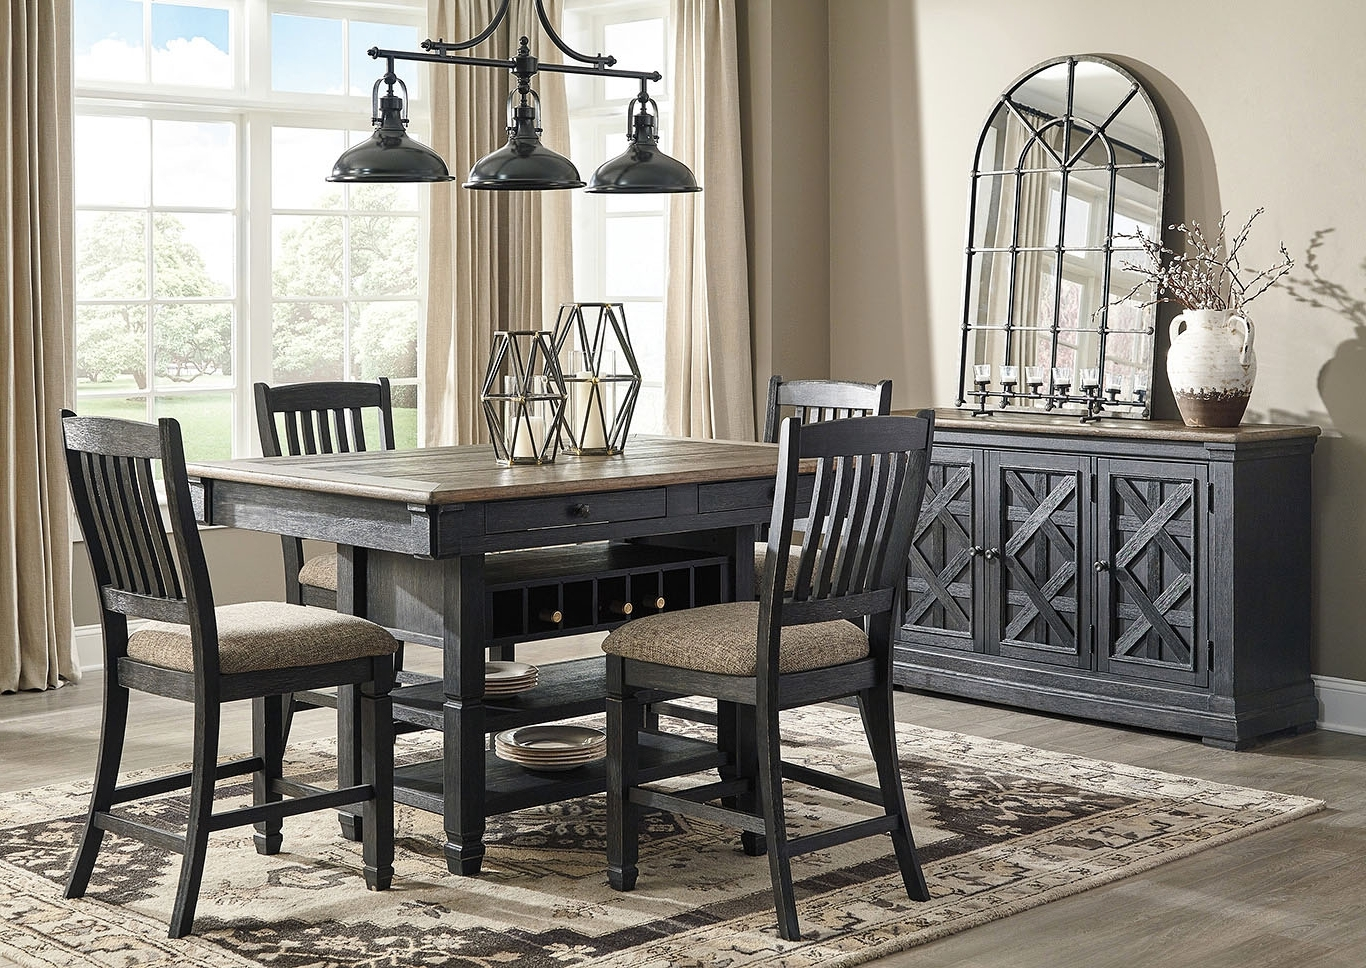 Furniture And More For Less Tyler Creek Black/grayish Brown 5 Piece Intended For Widely Used Craftsman 5 Piece Round Dining Sets With Side Chairs (View 20 of 25)